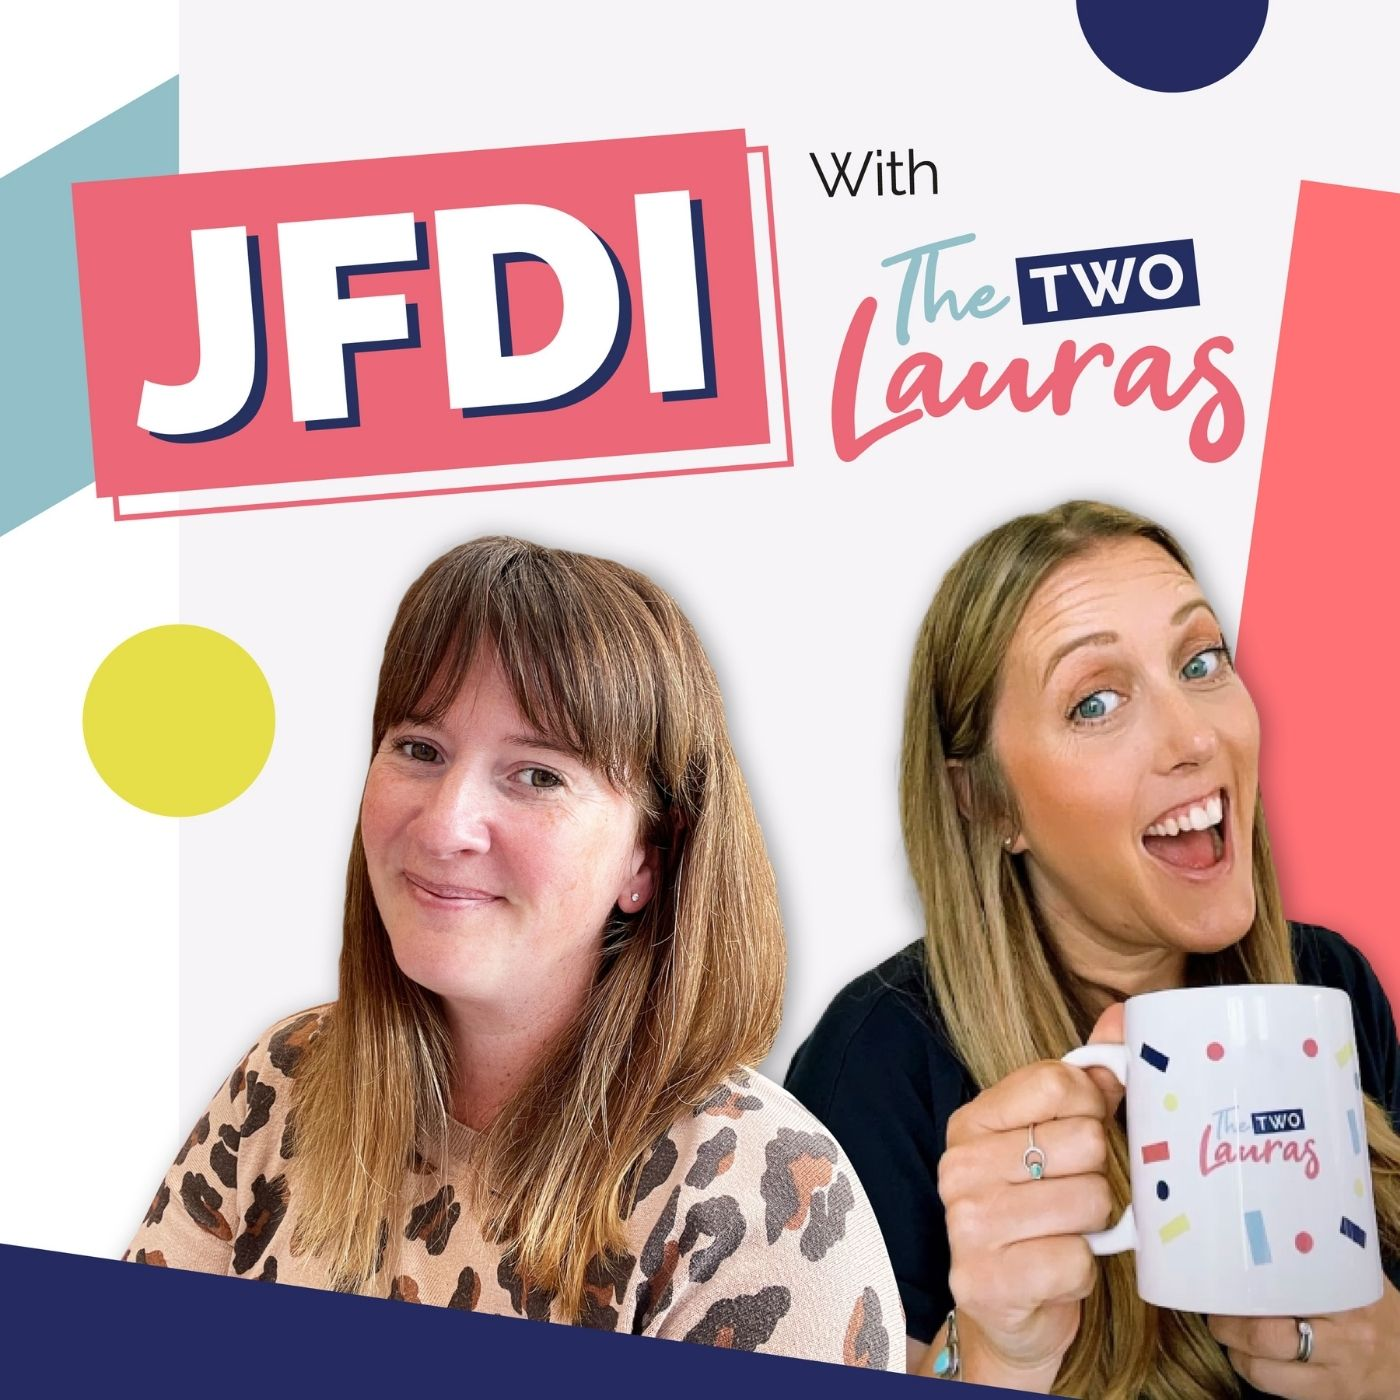 Artwork for podcast JFDI with The Two Lauras | For Freelance Social Media Managers